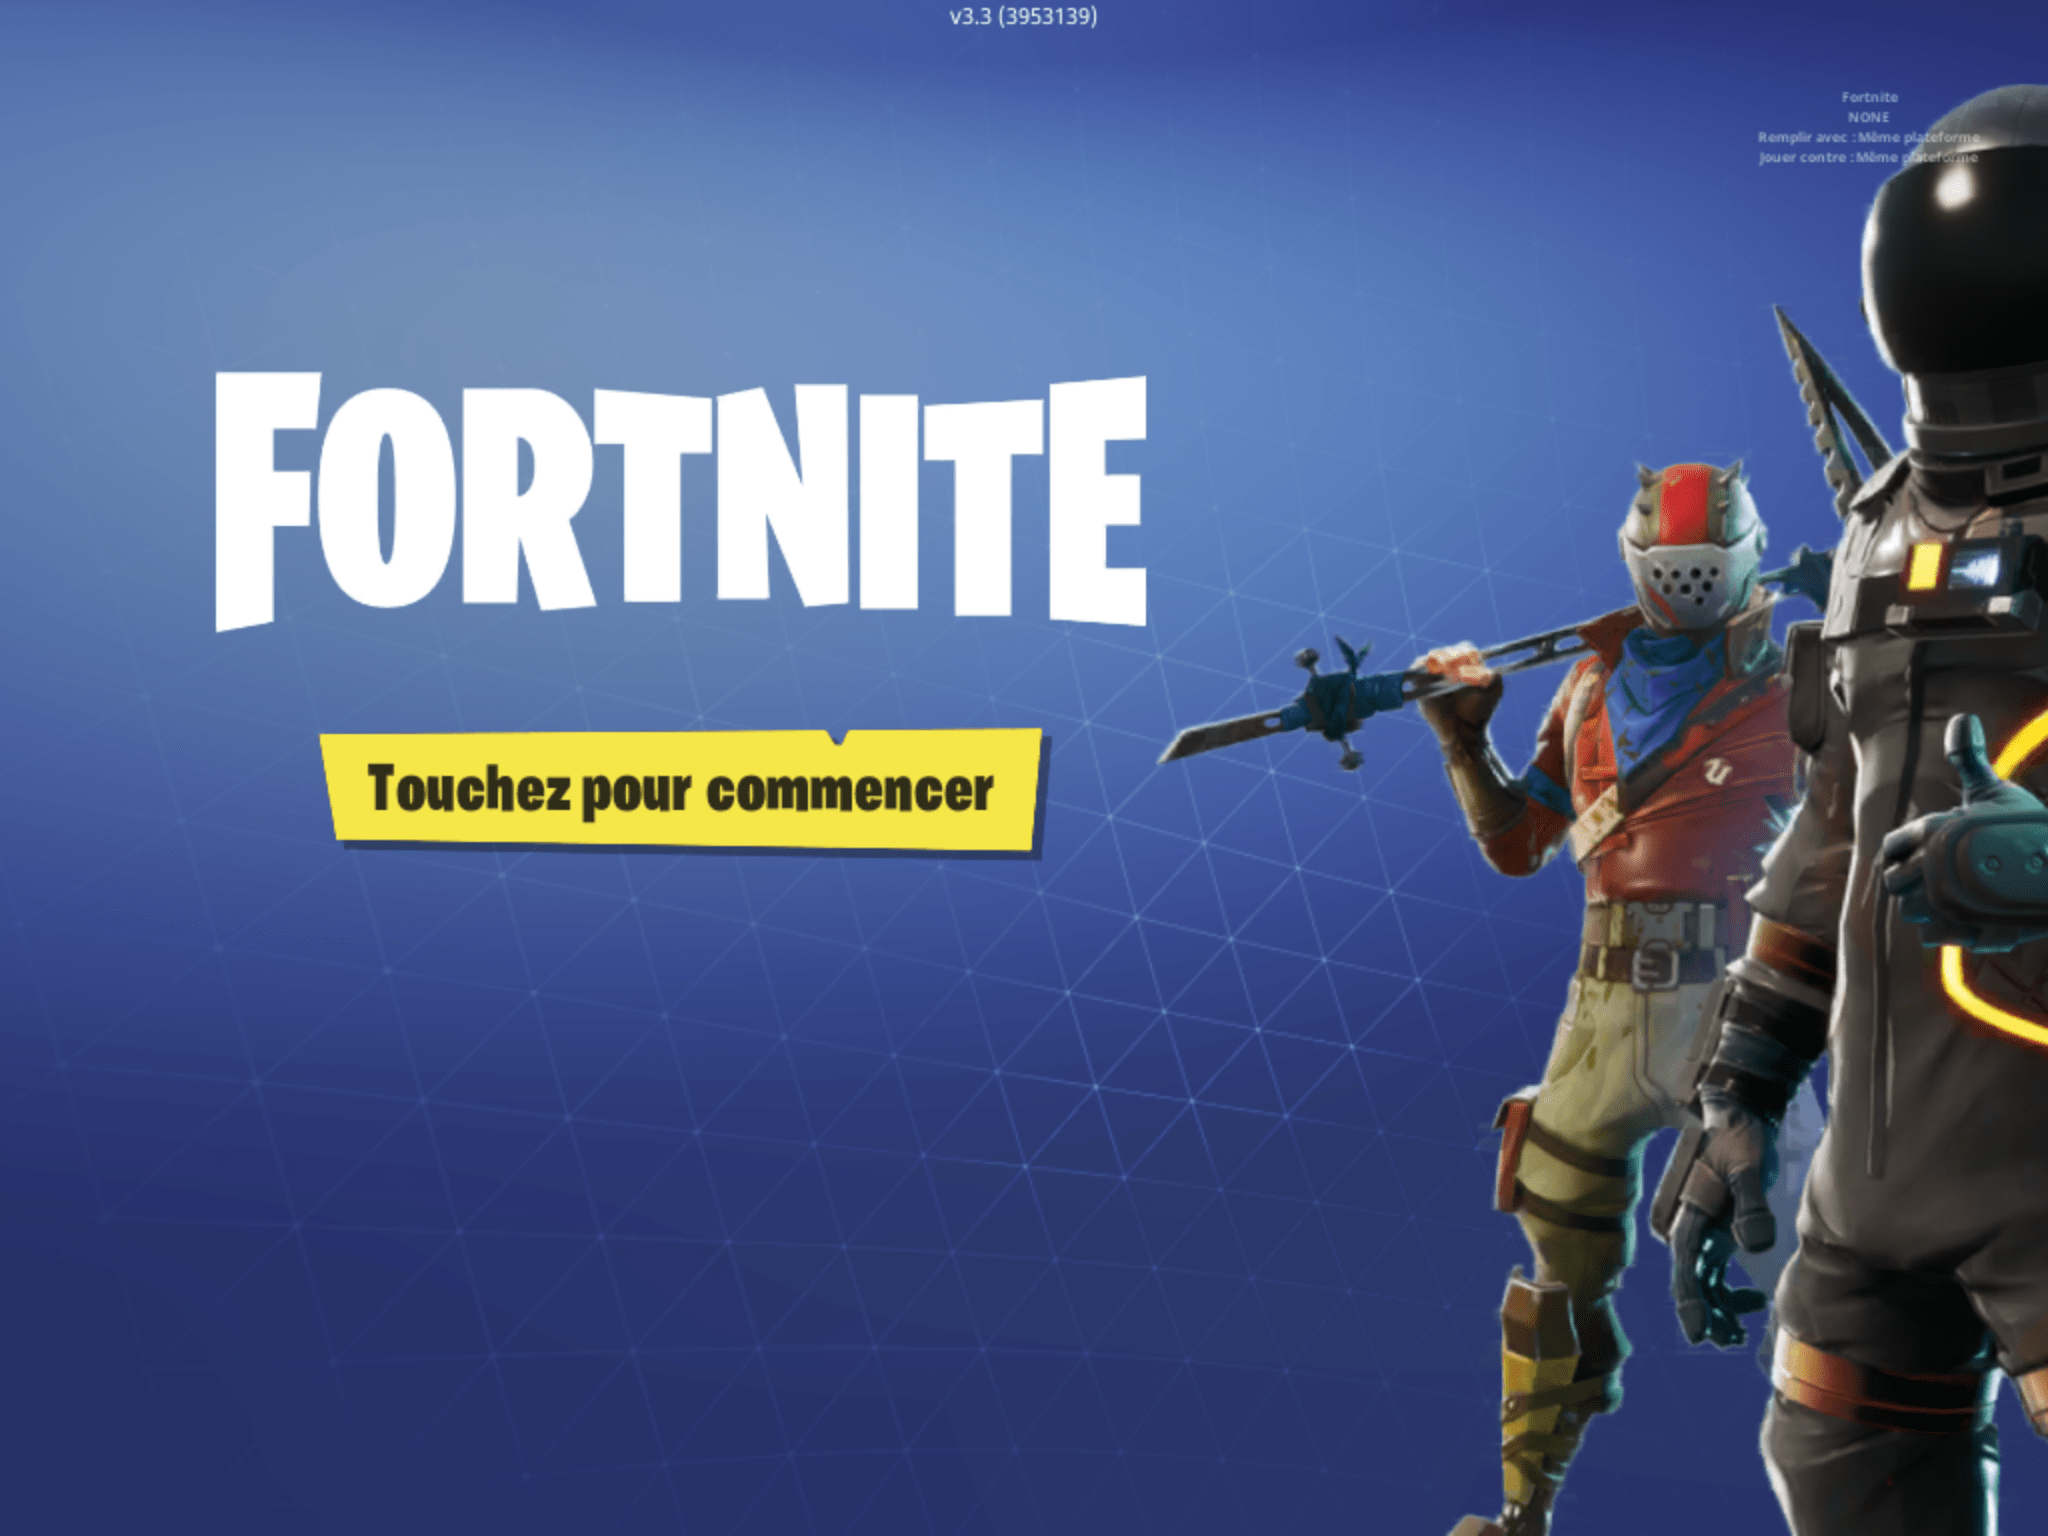 Fortnite sur Android : pas de Play Store, mais une disponibilité sur le Galaxy Apps de Samsung